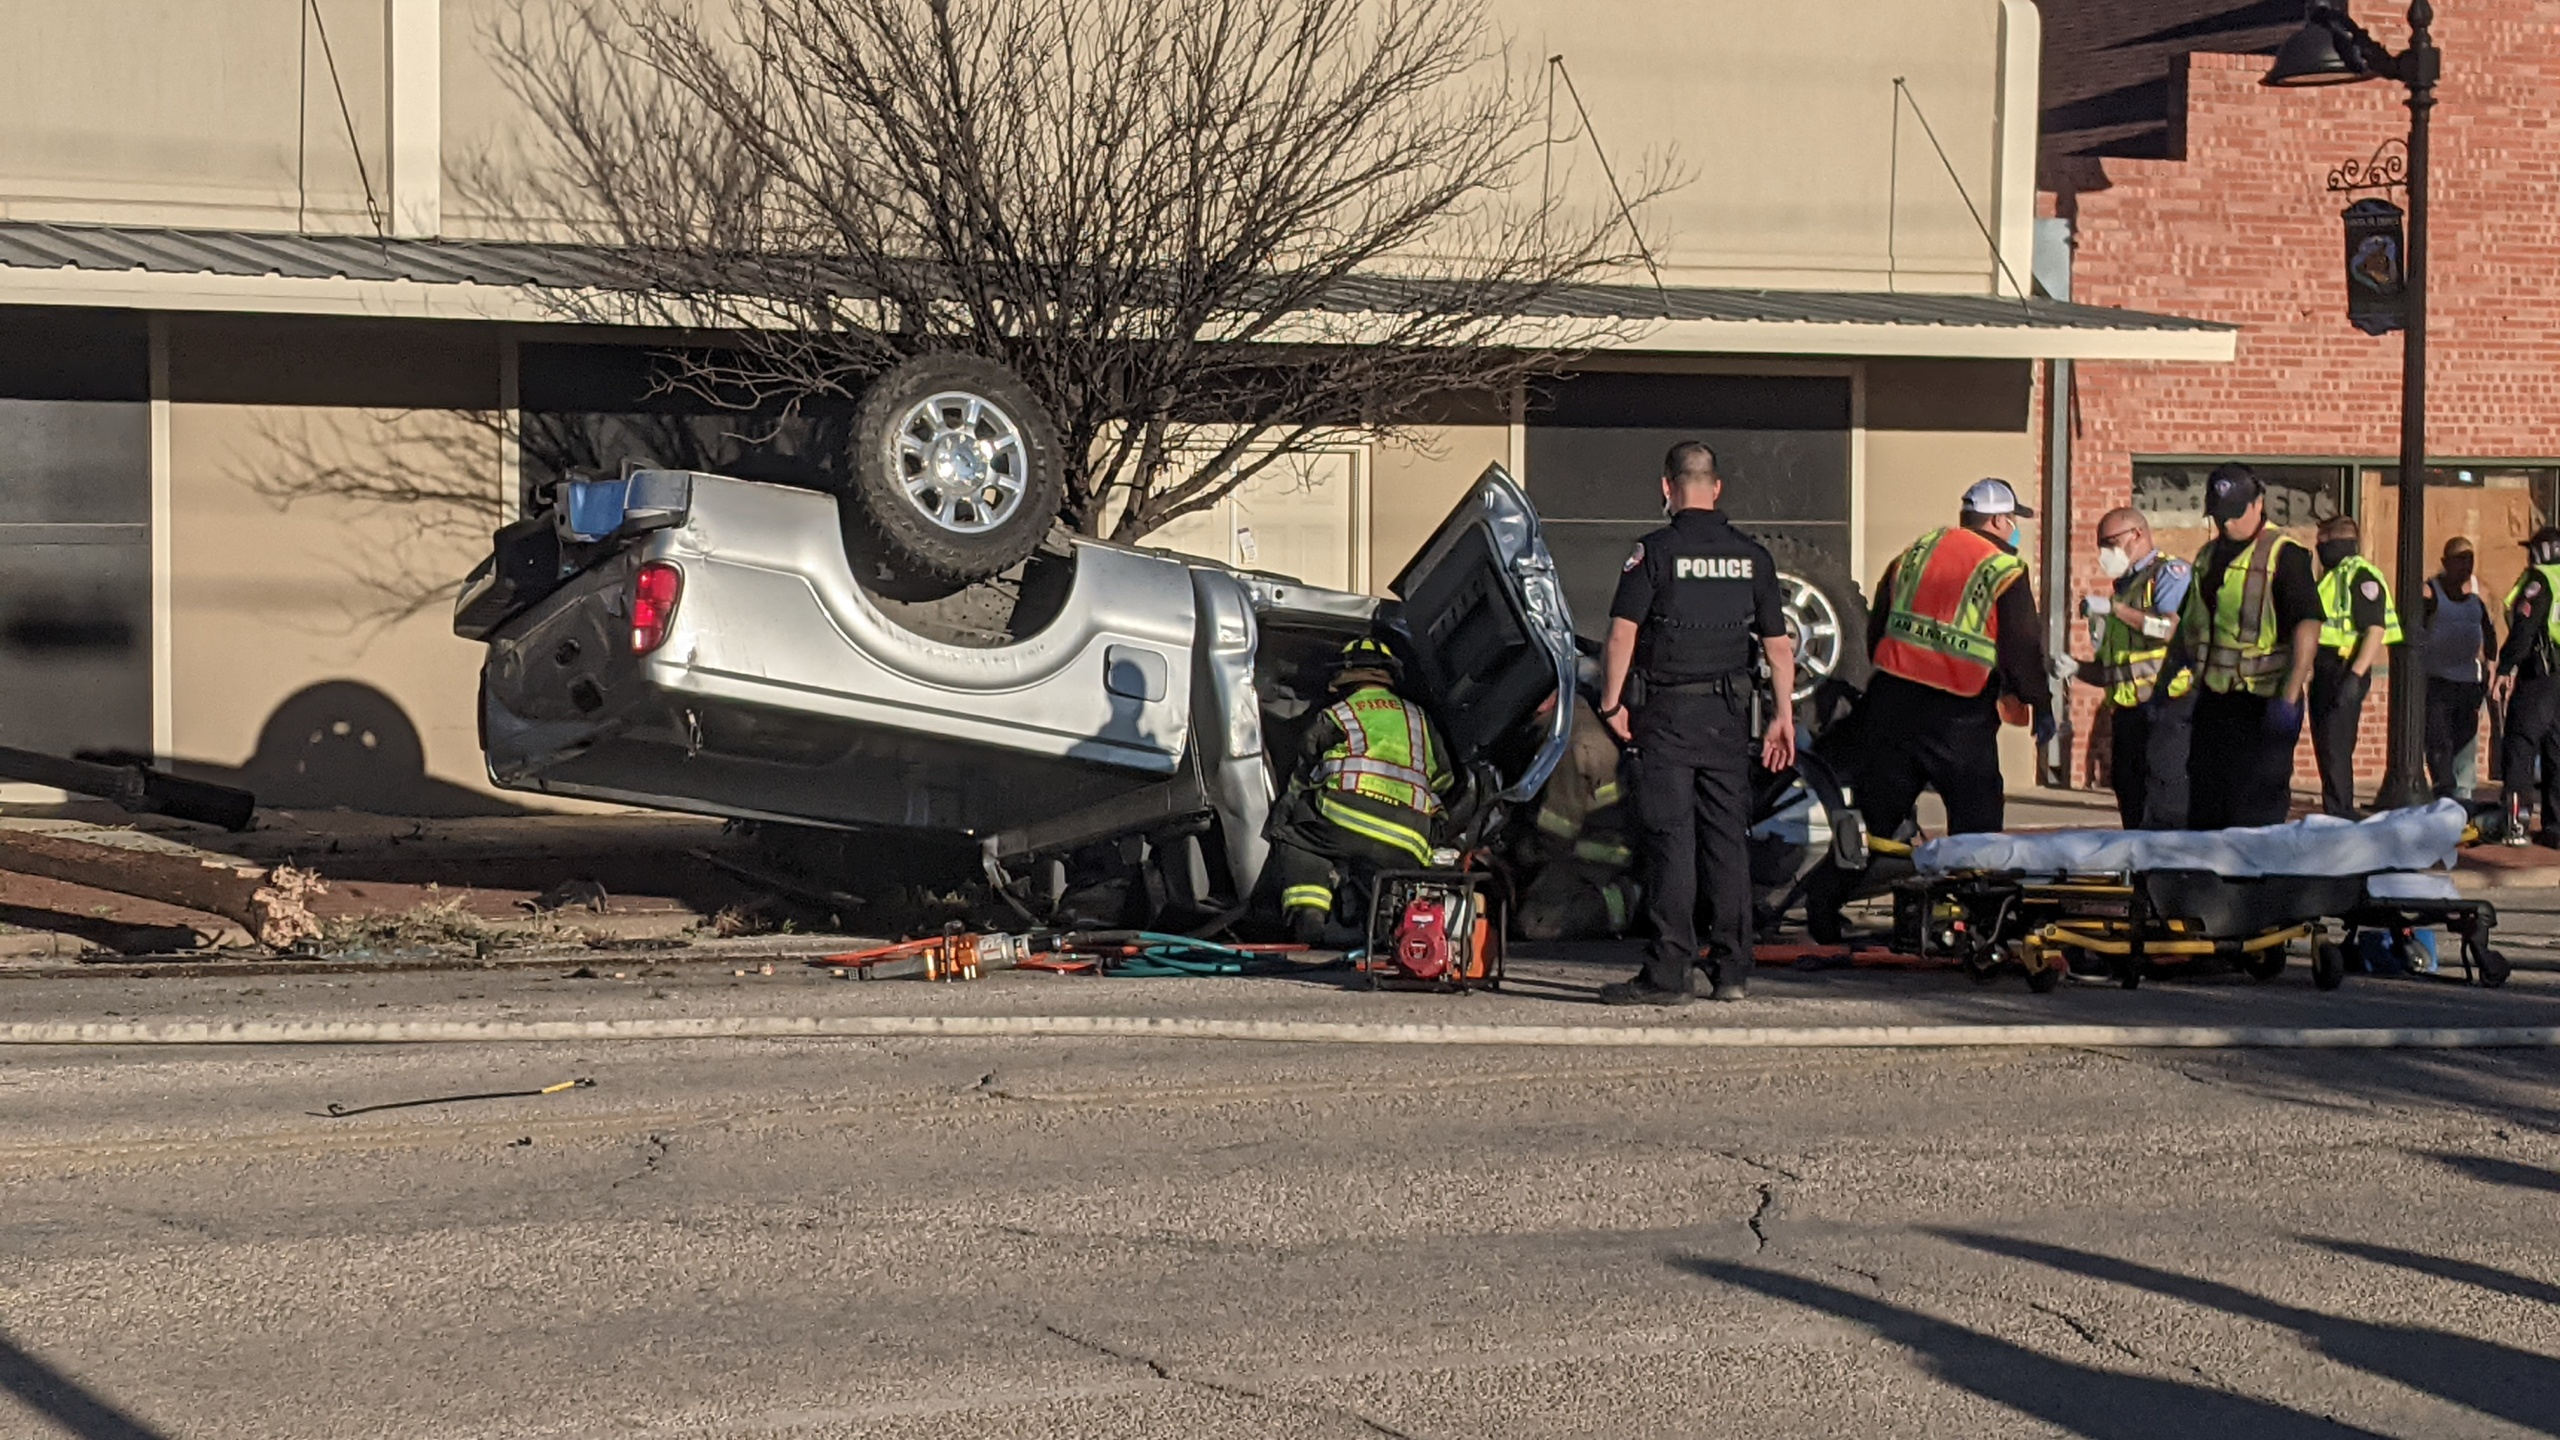 Overturned and badly damaged silver Ford F-150